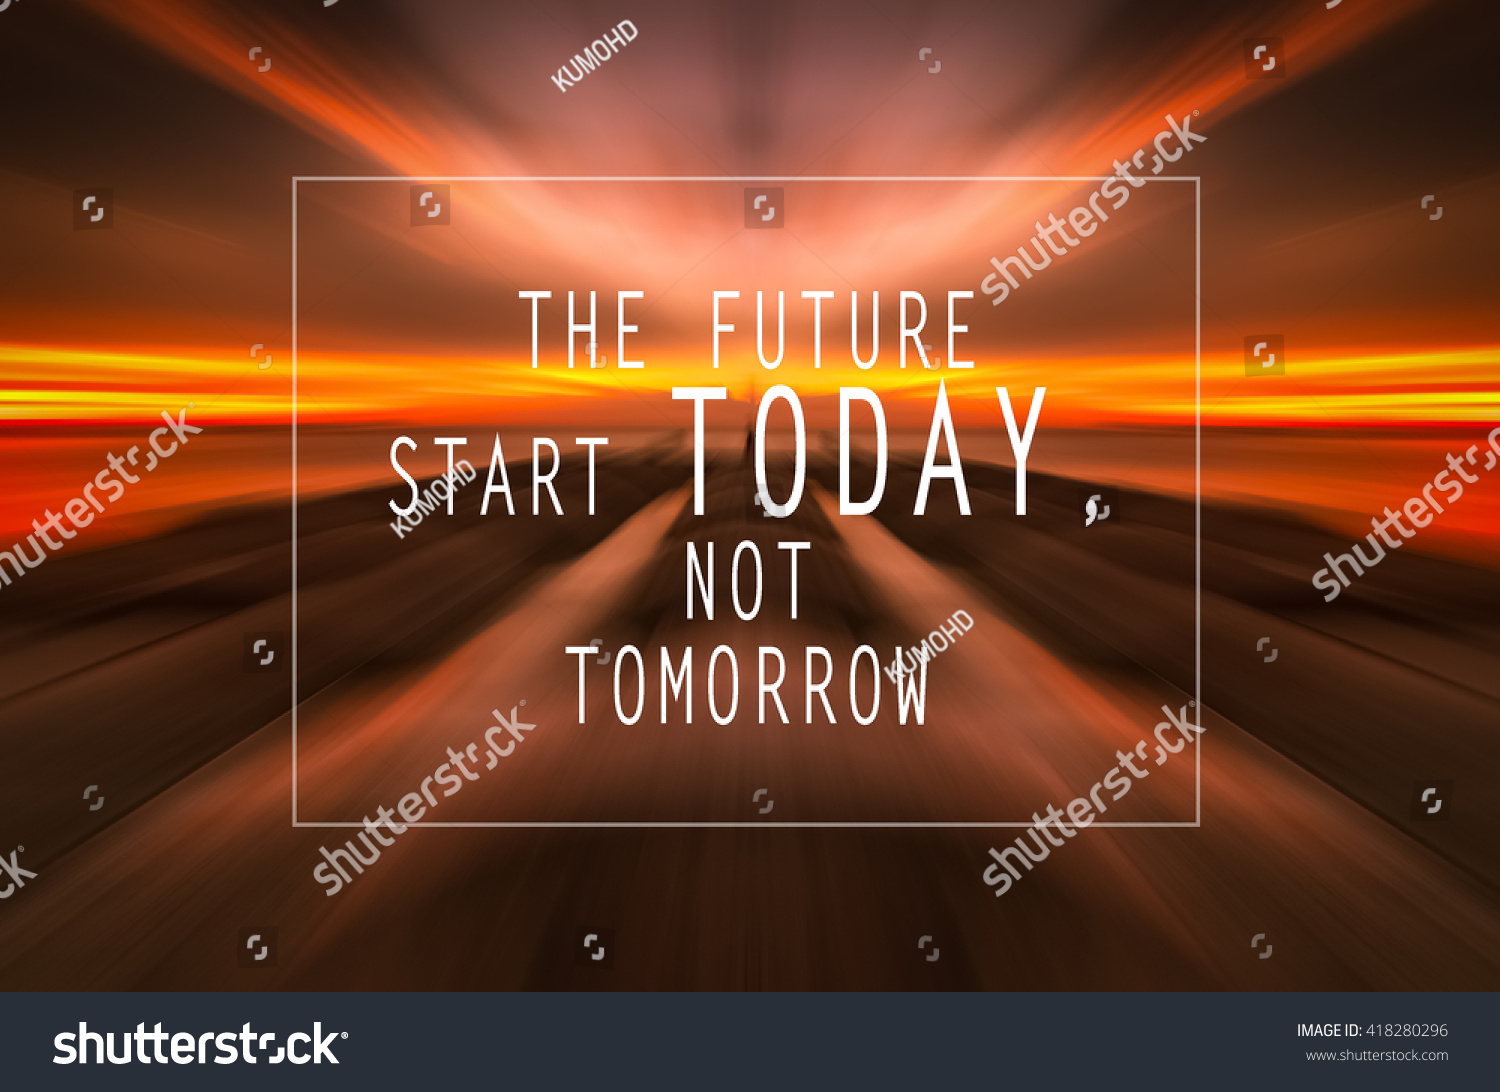 Inspirational Motivation Quote On Sunset Abstract Stock Illustration  418280296   Shutterstock